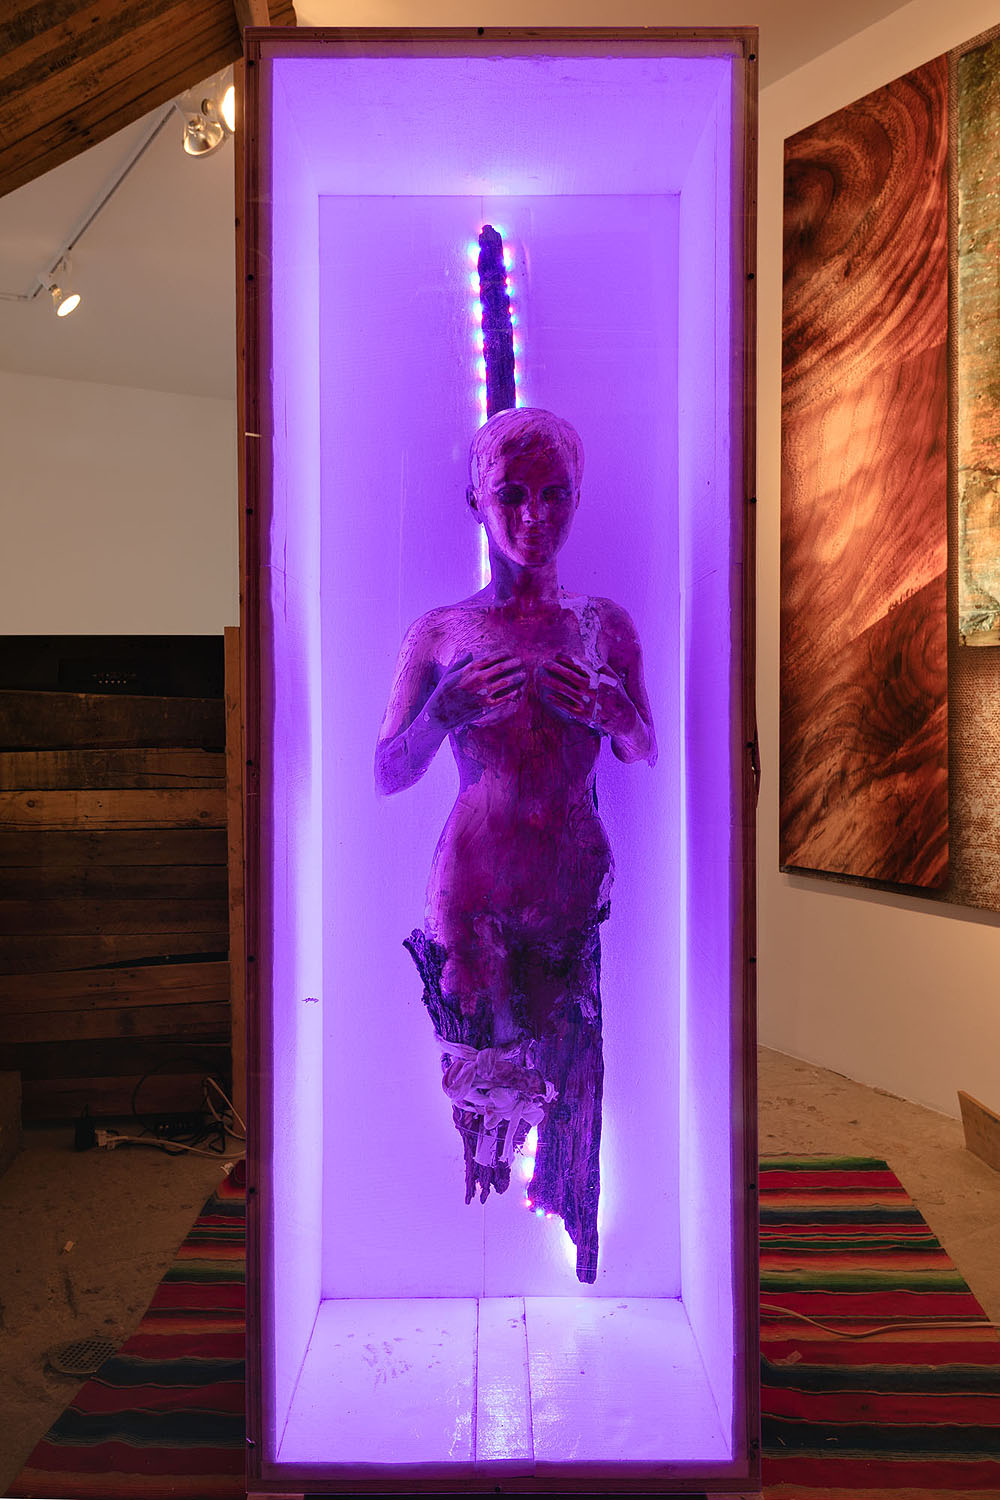 Yves Scherer    Our Lady of Guadalupe , 2017  Perspex, wood, LED lights, plaster, goldleaf, acrylic, paint, polystyrene, rug  83 x 60 inches